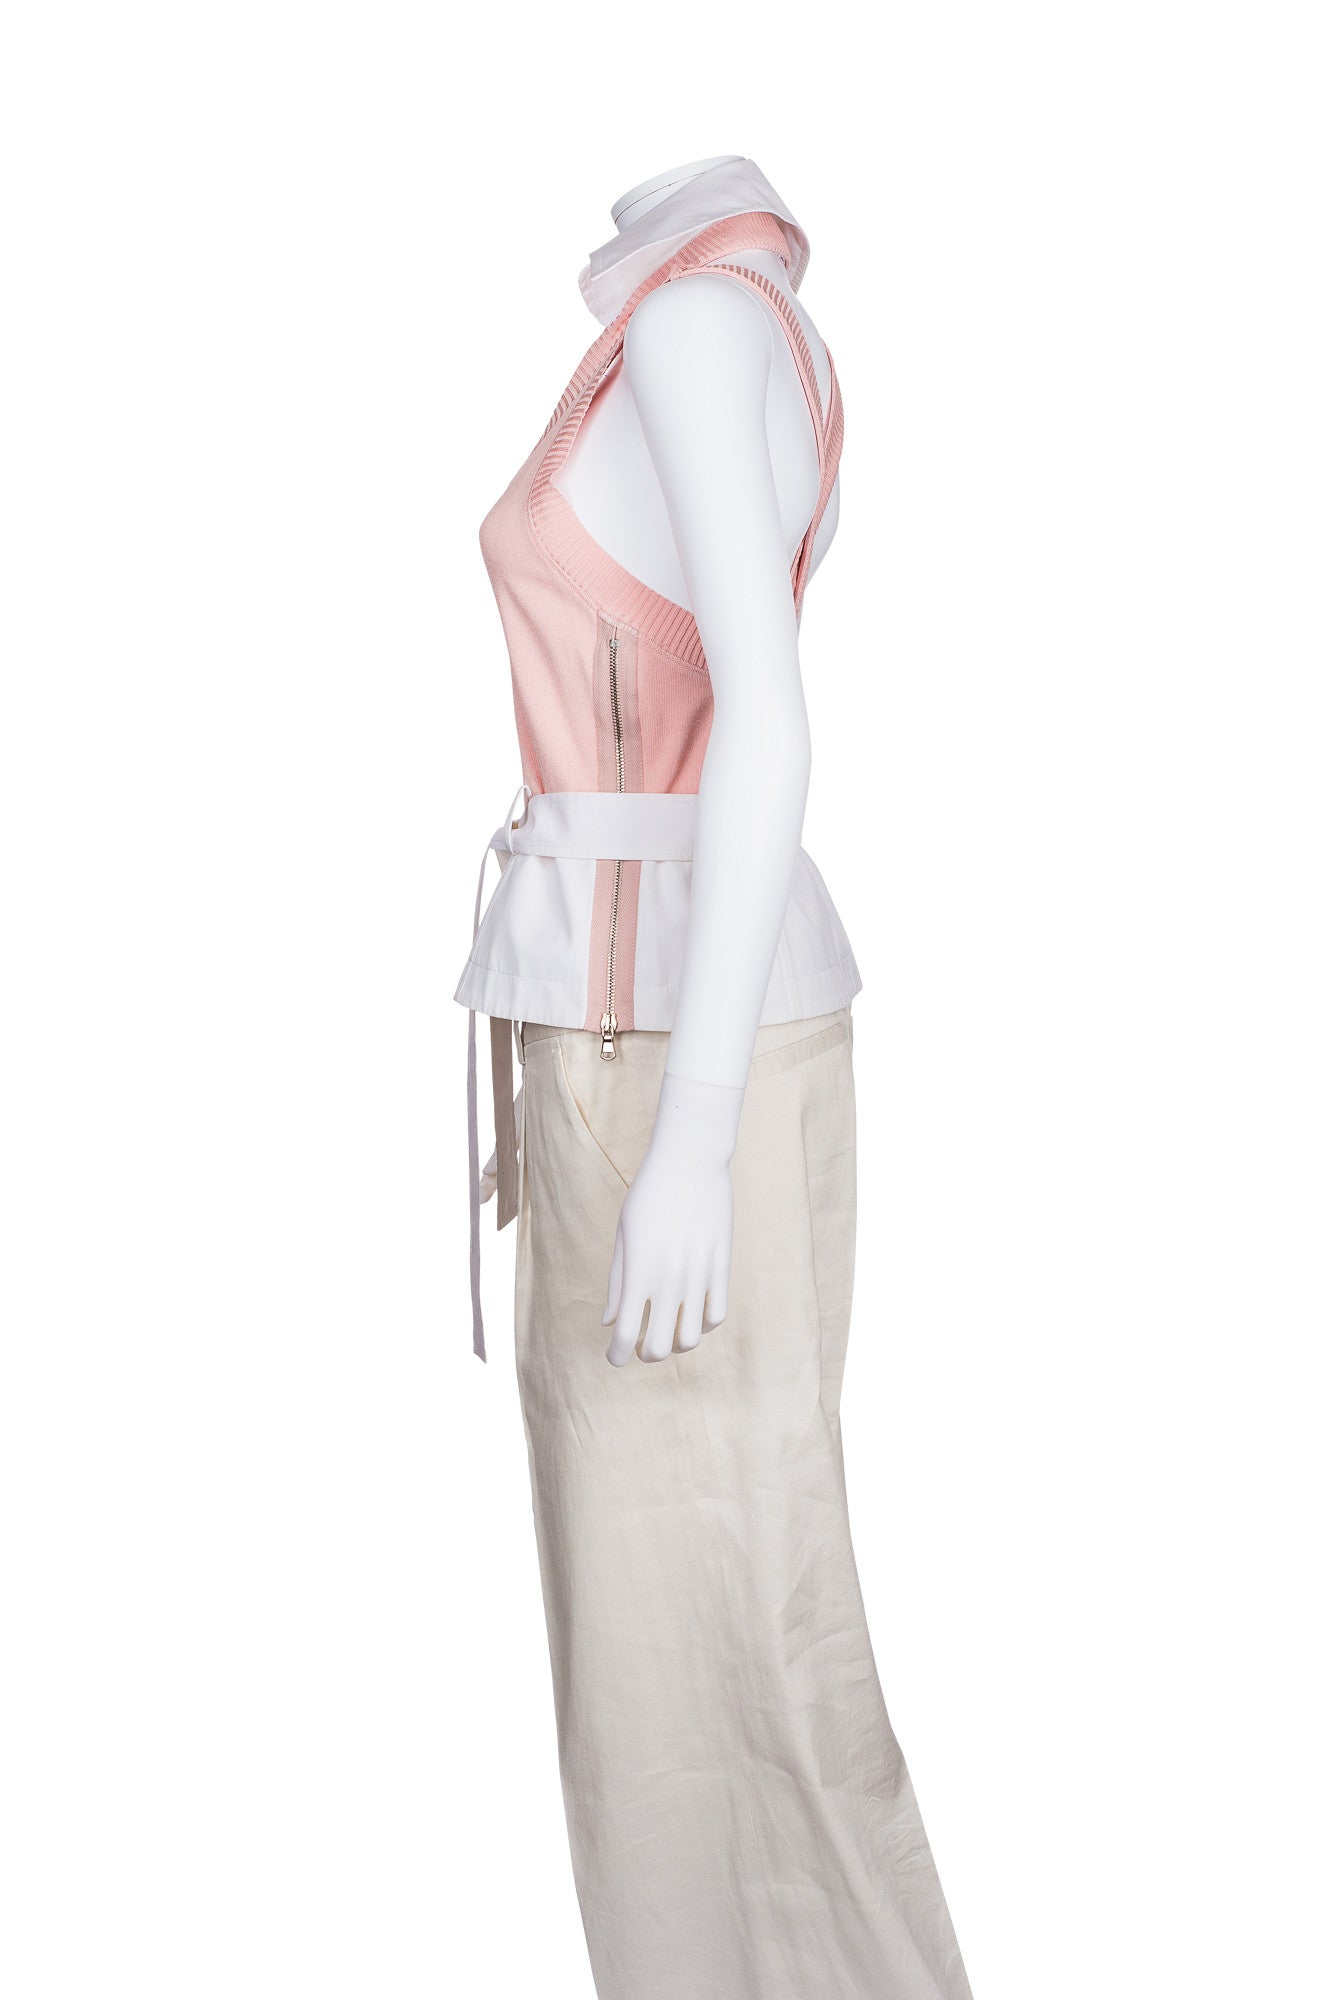 TOMASO STEFANELLI Sleeveless Top With Removable Collar